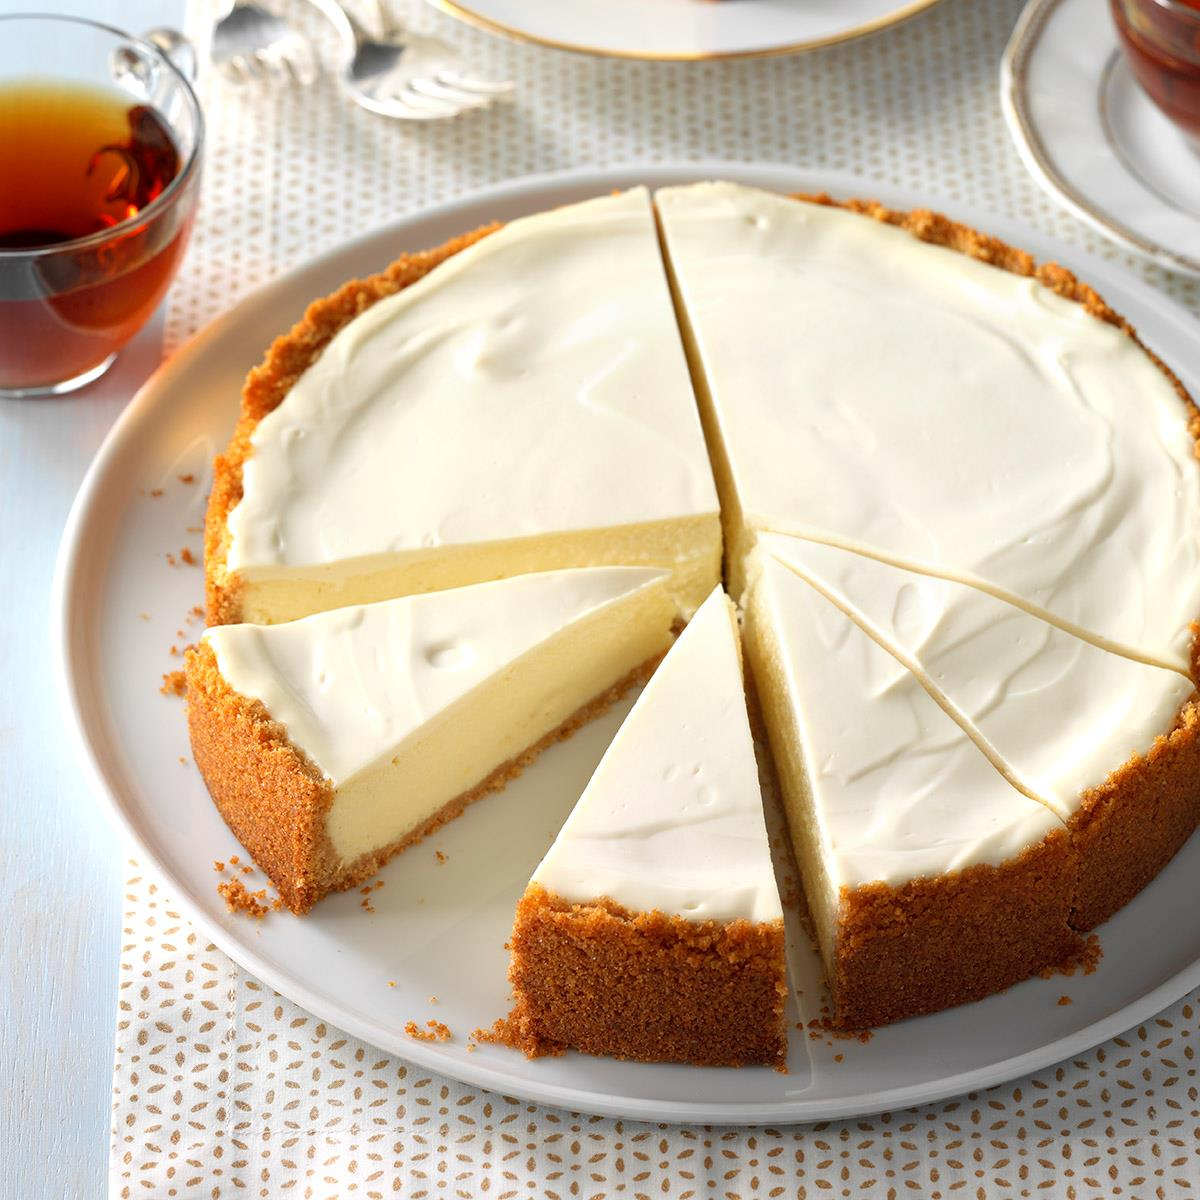 Old World Ricotta Cheesecake Recipe How To Make It Taste Of Home